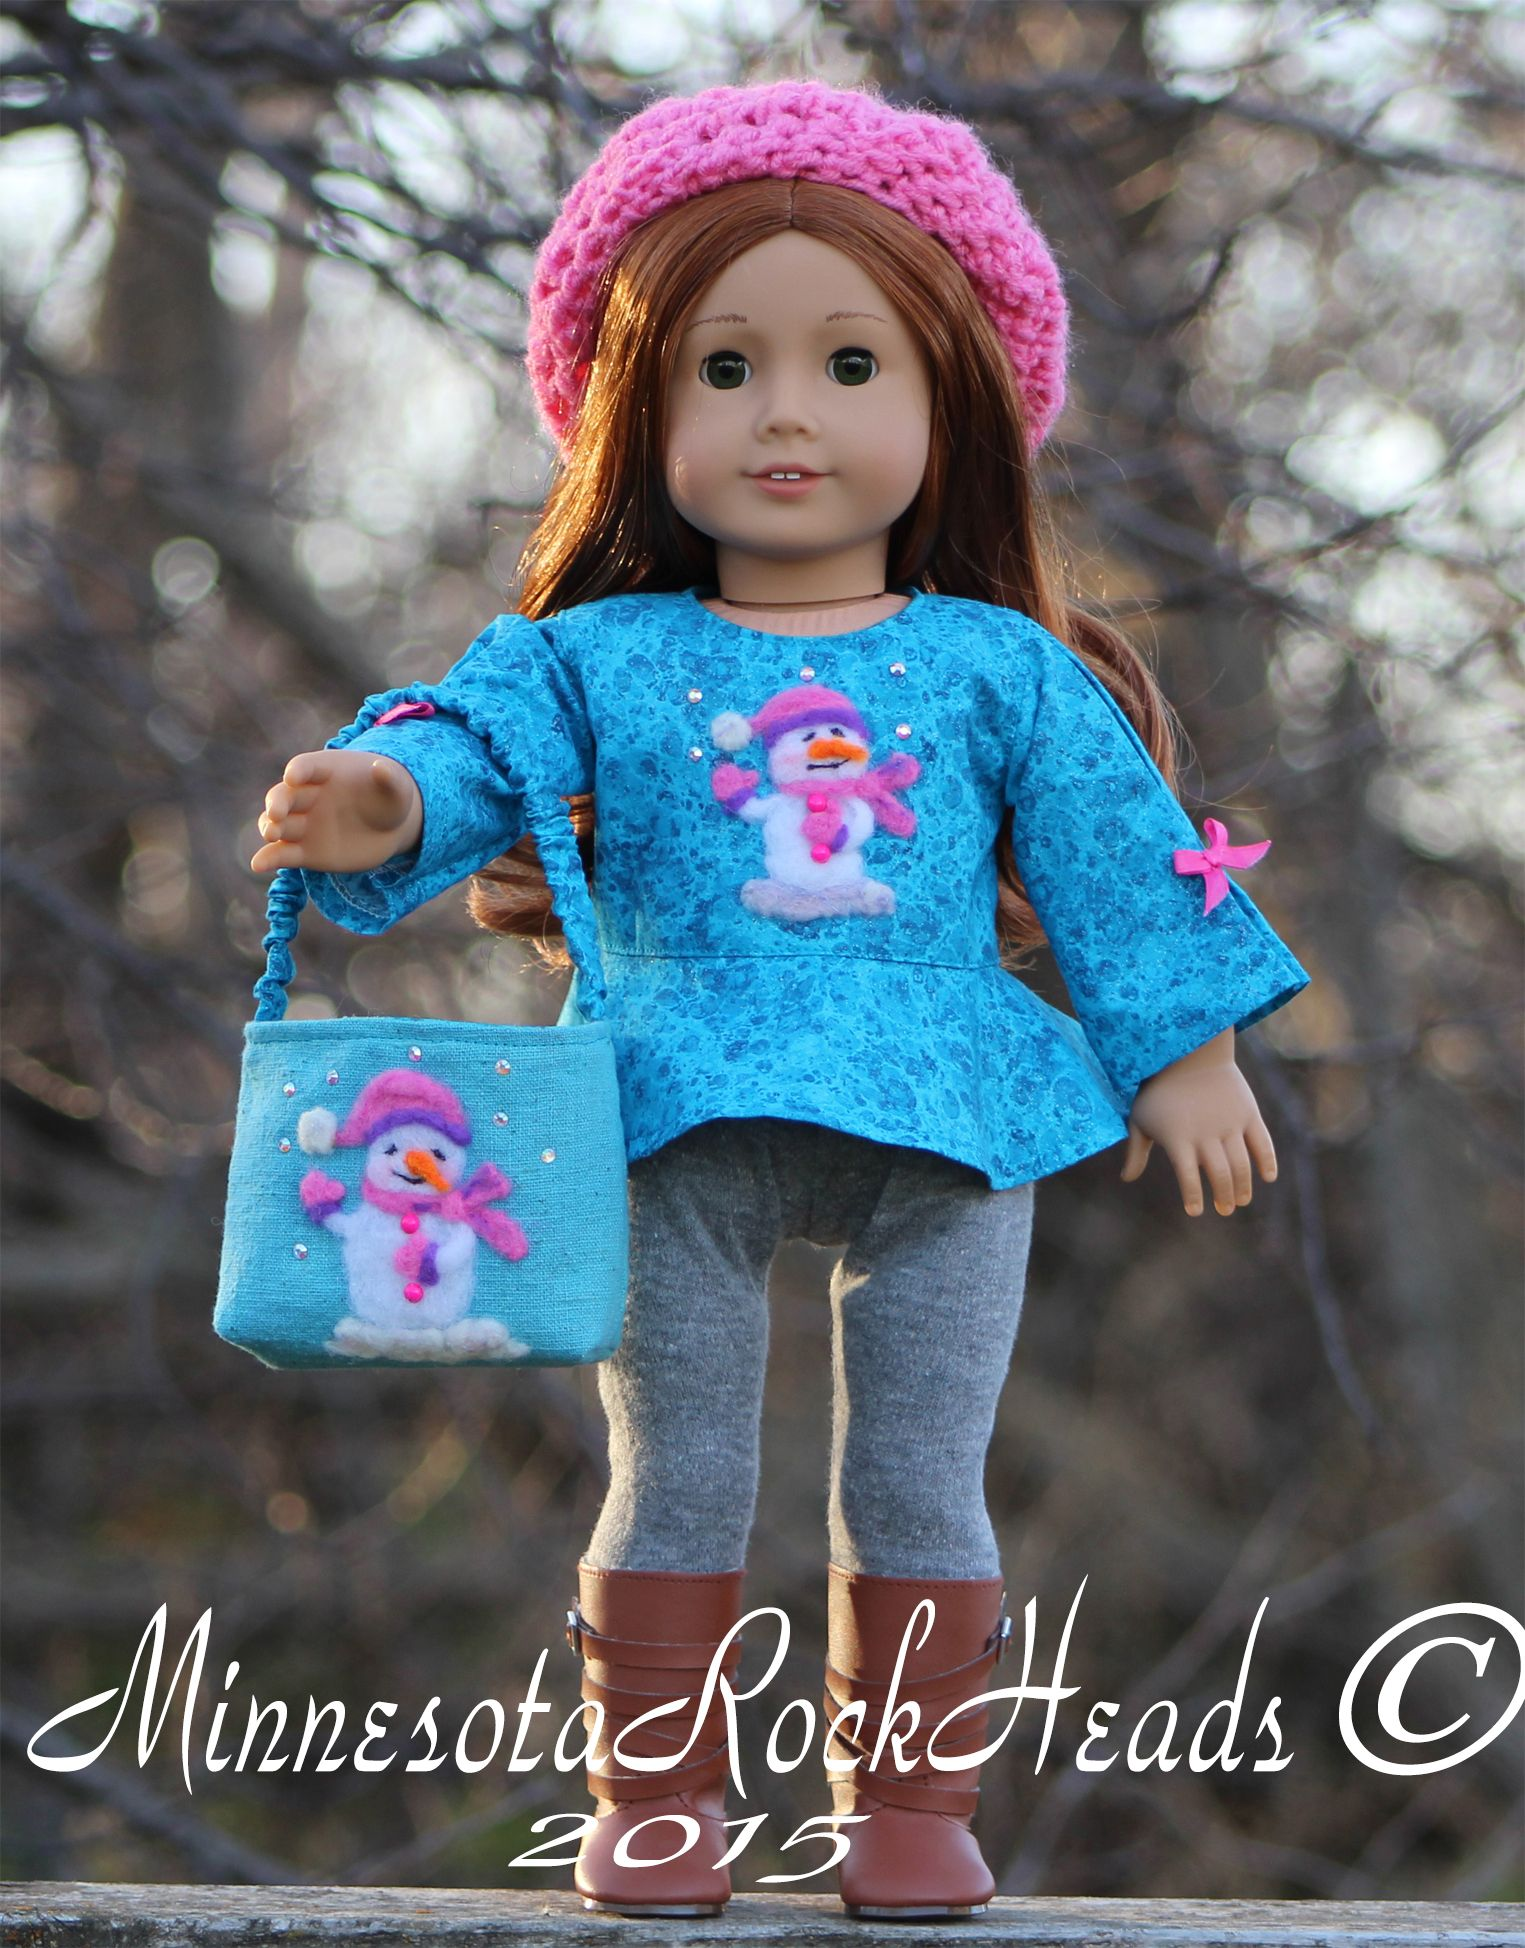 Top with needle felted snowman and leggings. Holding her very own OOAK Shopping Bag. What outfit wouldn't be complete without your favorite Beanie. Sarah is already to go Shopping. #OHSewKat #SchoolBellBlouse #pixieFaire #LibertyJane #DollTagClothing #MinnesotaRockHeads #OOAK #Needlefelting #Snowman #winter2015 #sewing #crocheting